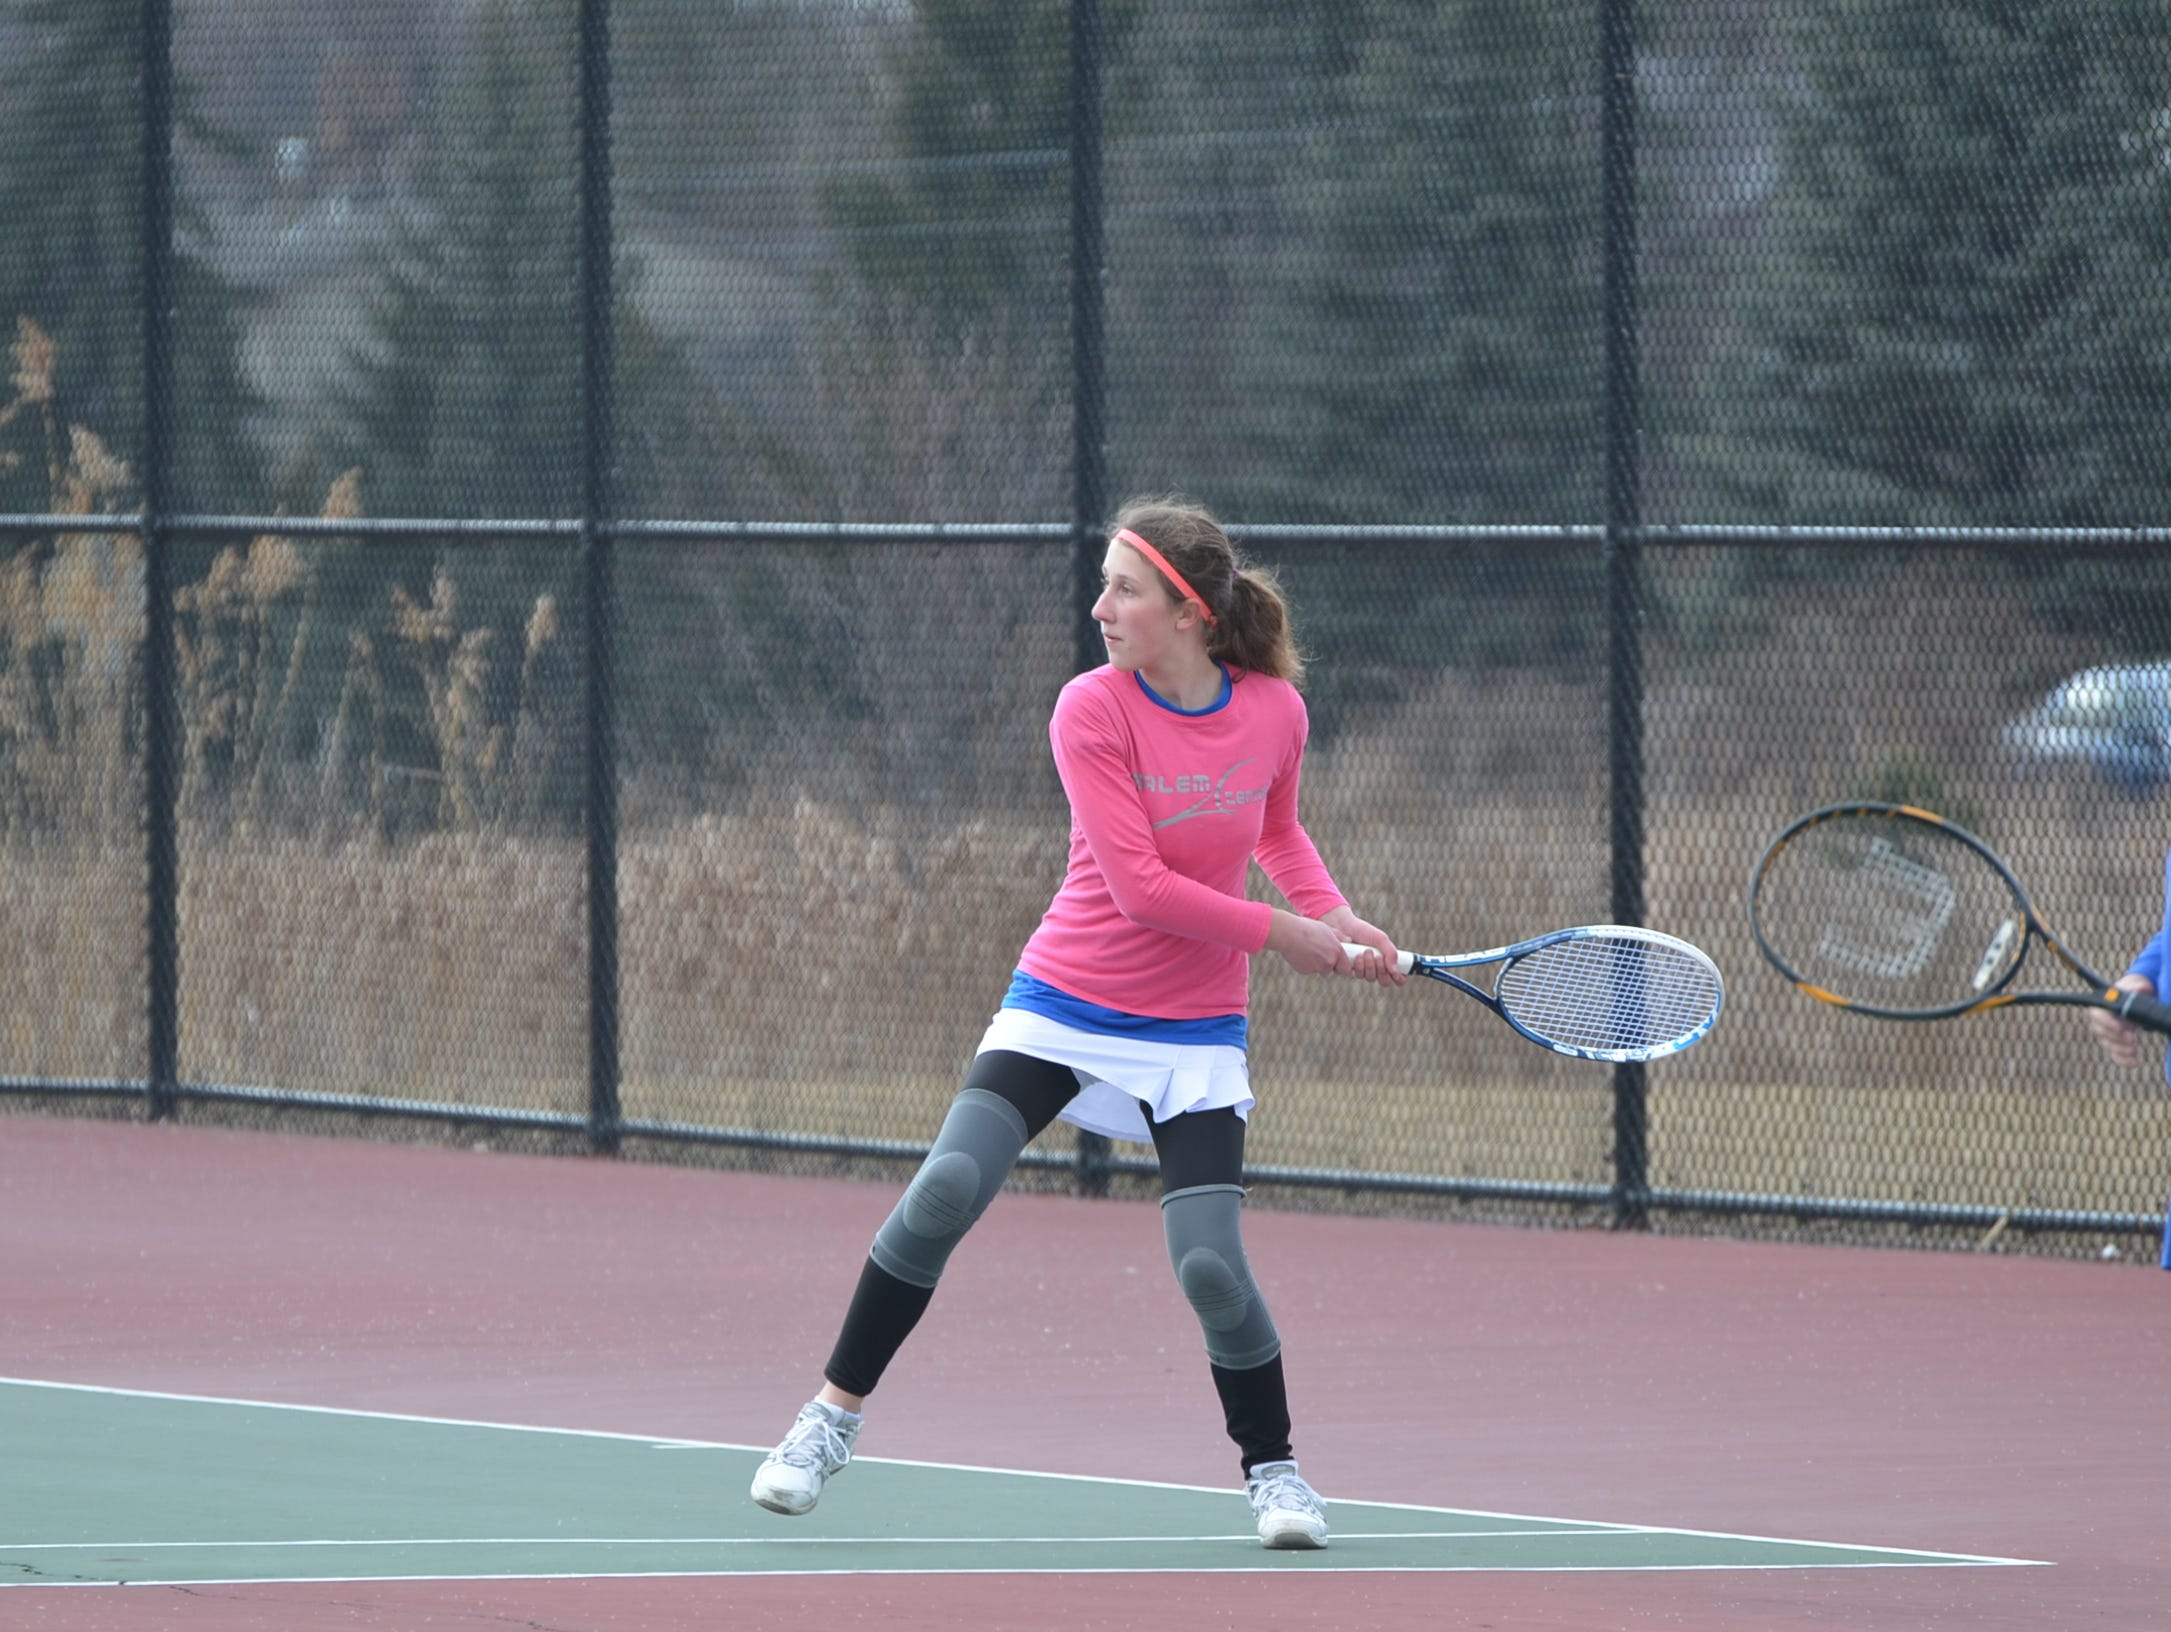 Getting ready to launch a return for Salem is 3 singles player Madison Kulik.